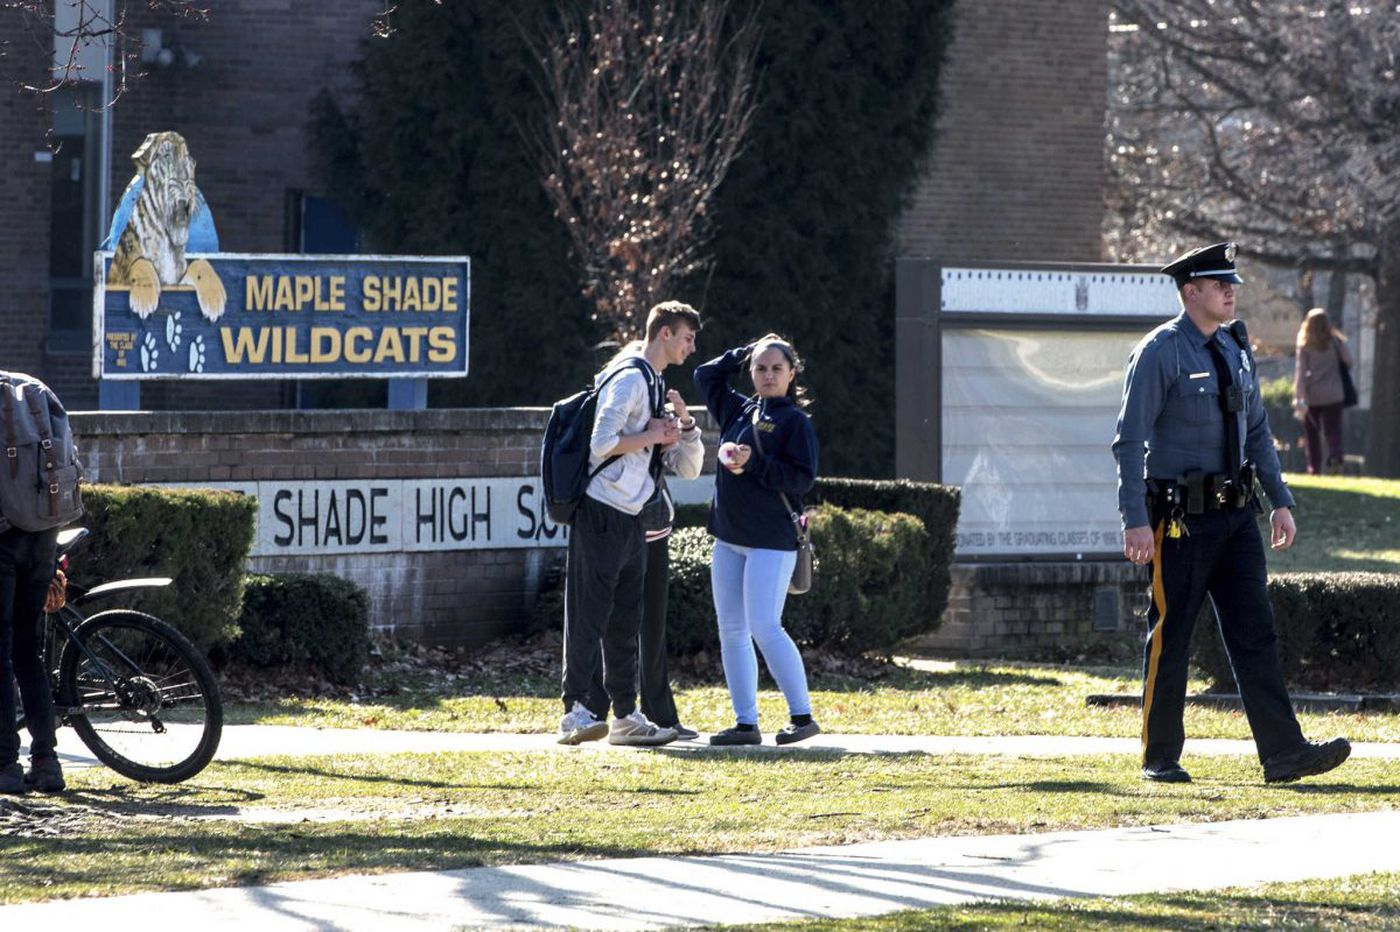 Racist social-media posts spark outrage at Maple Shade High in South Jersey